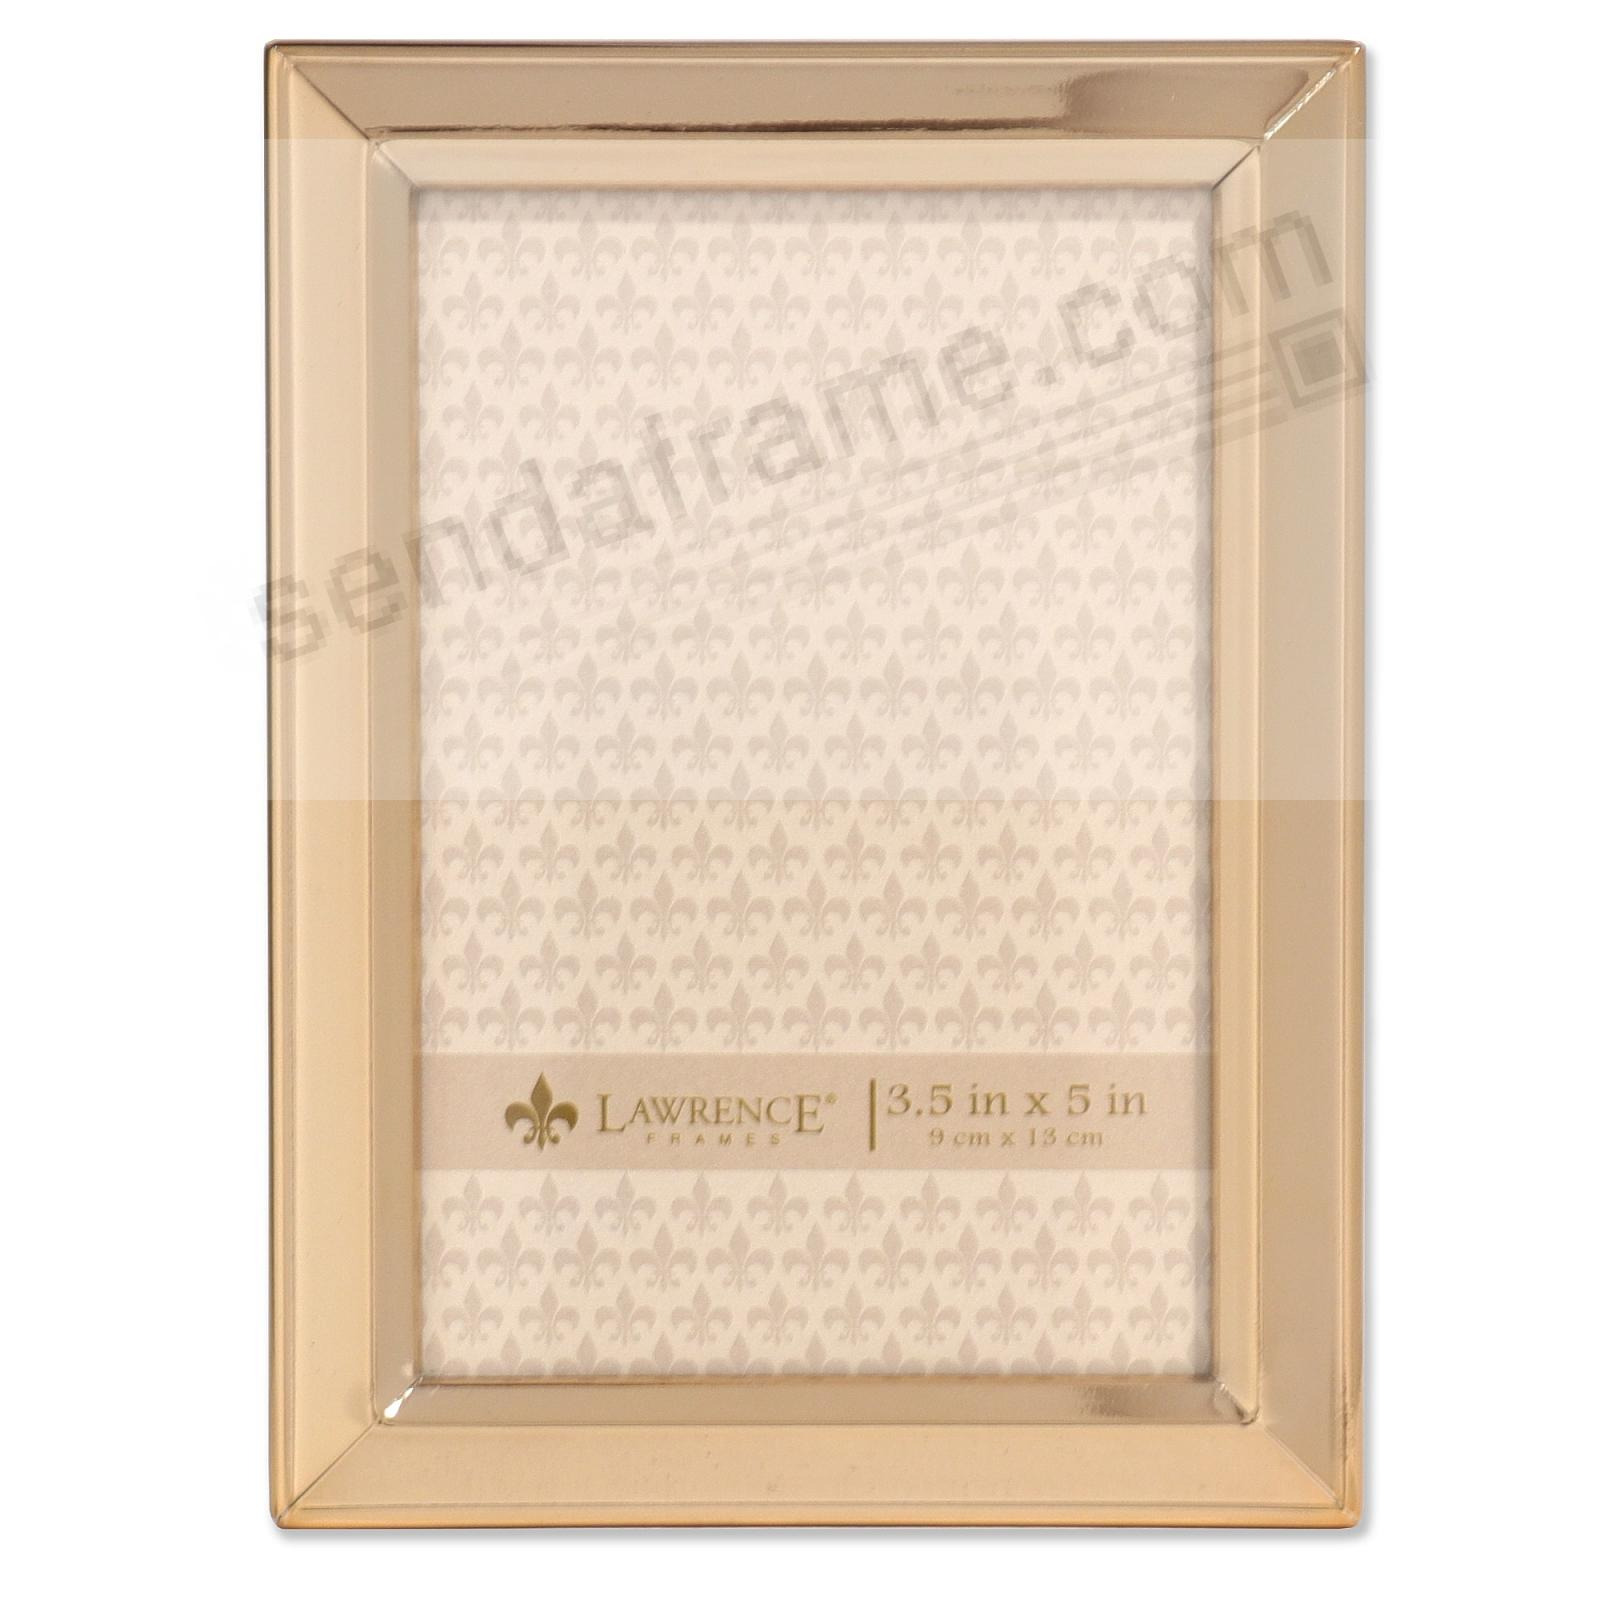 Bevelled Border Gold finish 3x5 frame by Lawrence®